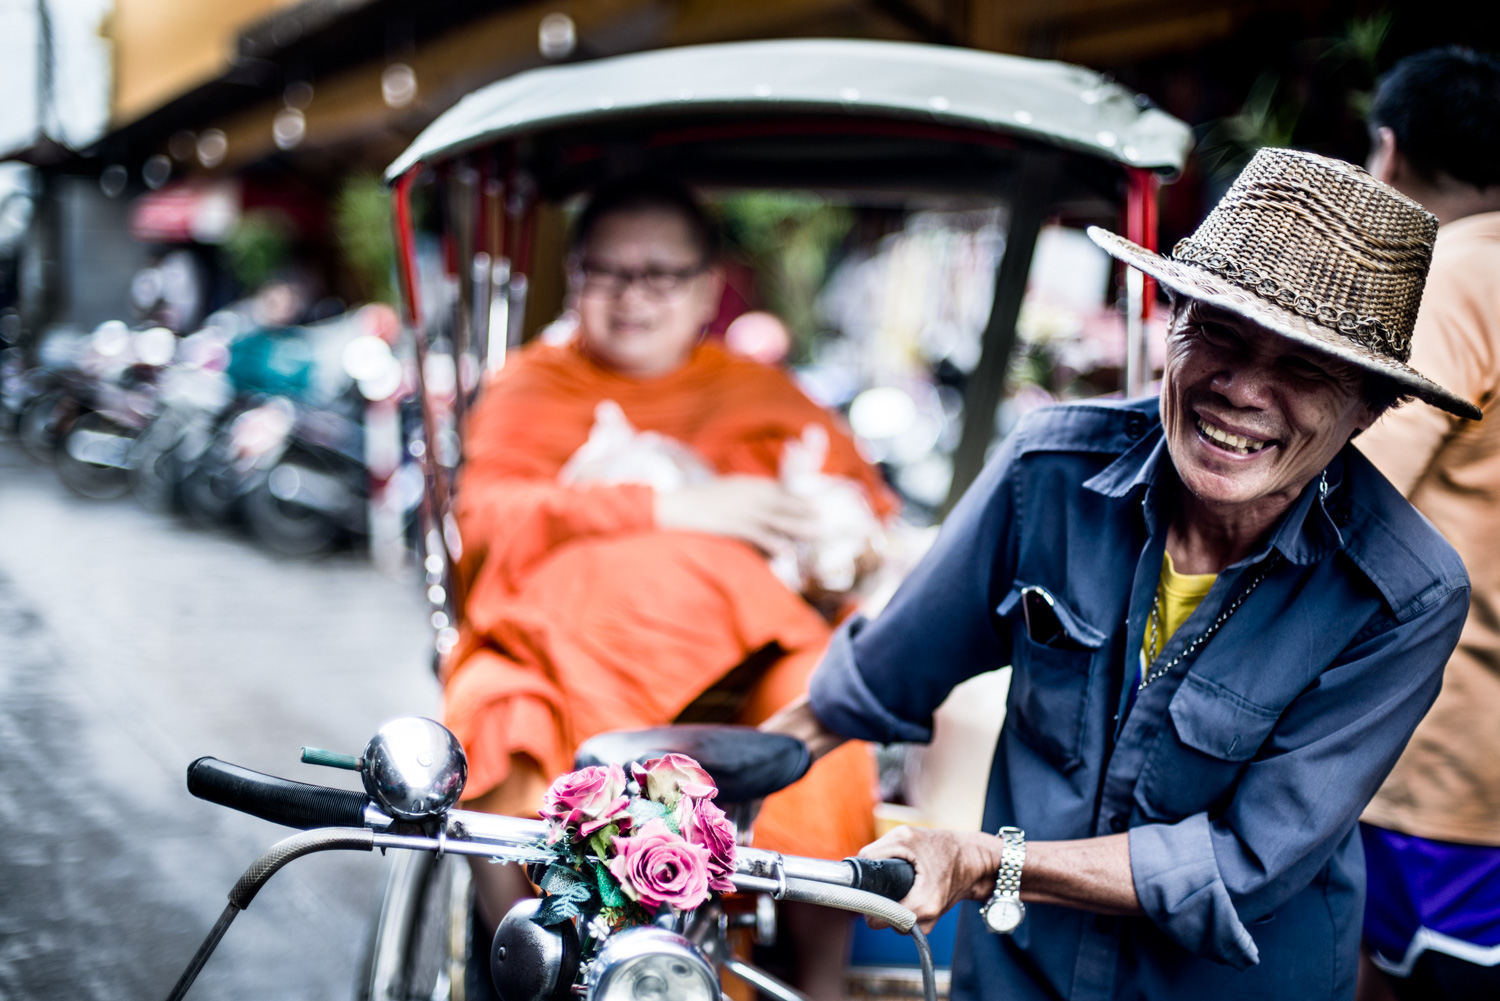 Monk in a Saamlor tricycle taxi in Chiang Mai, Thailand.